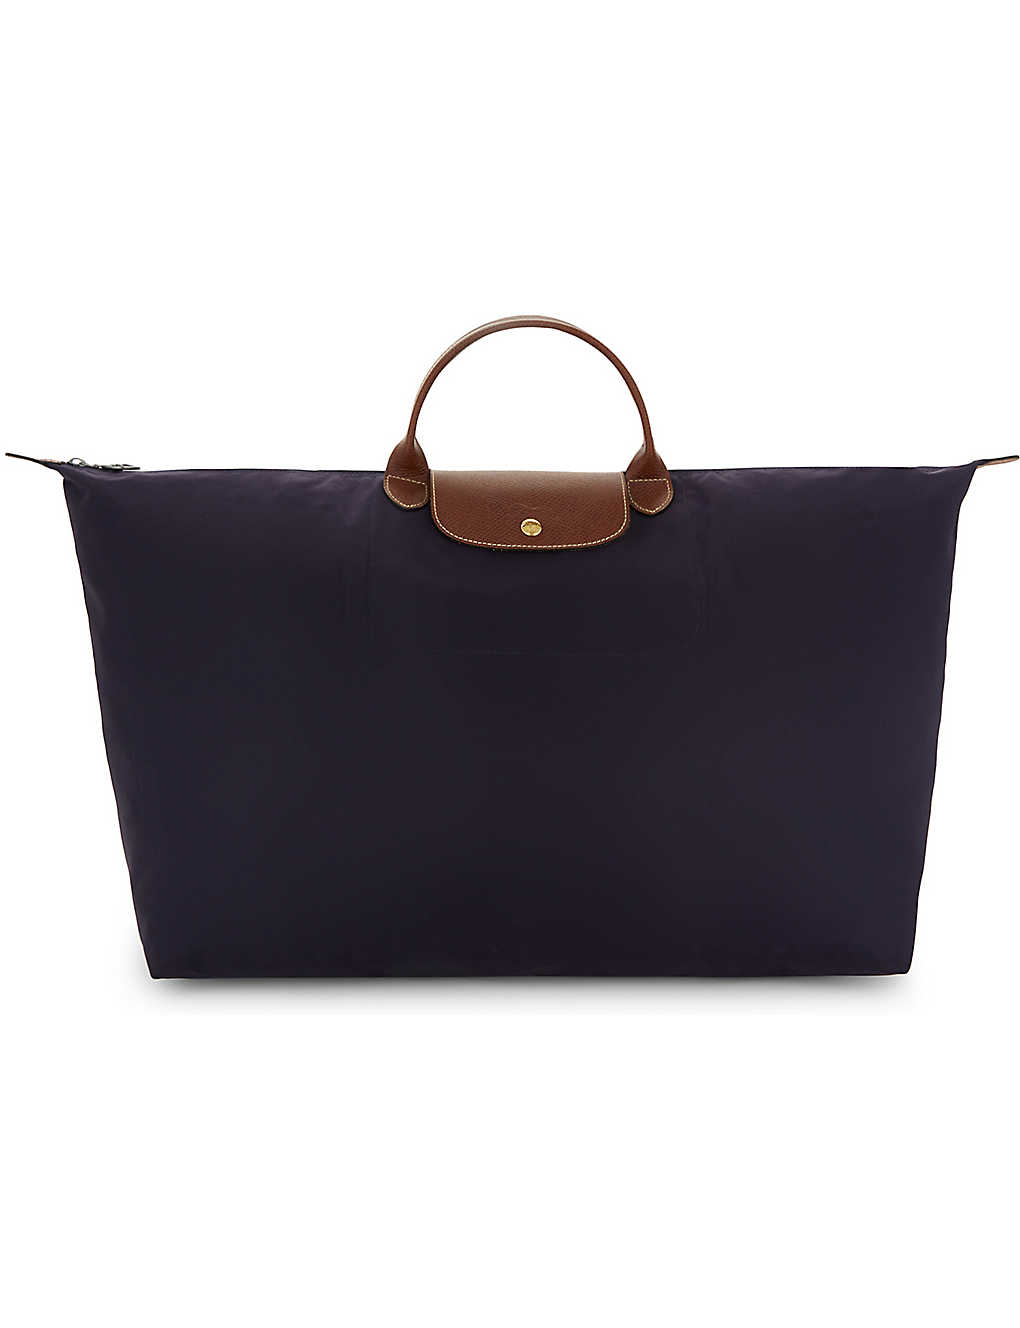 LONGCHAMP: Le Pliage large travel bag in myrtille